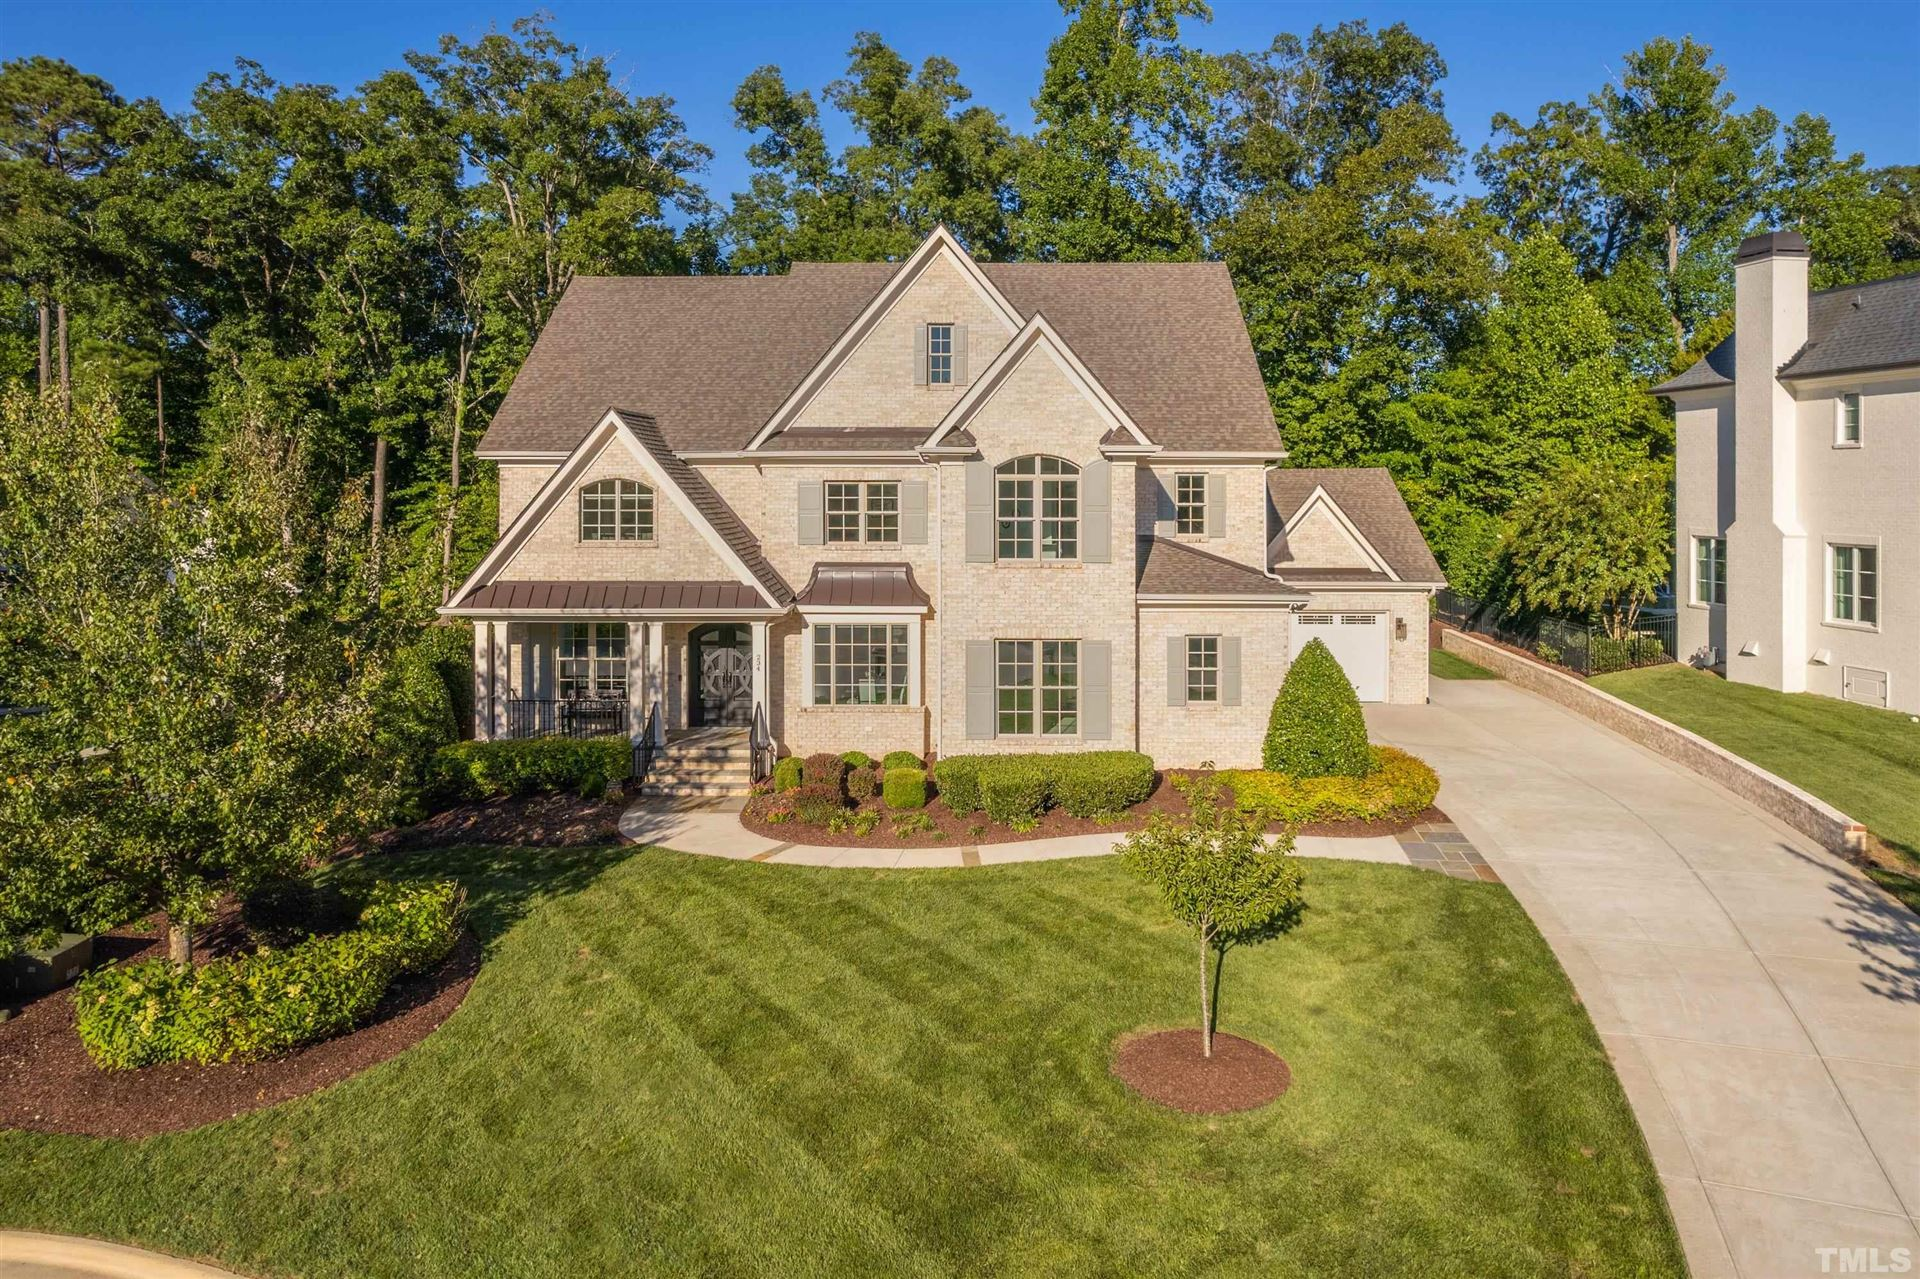 Photo of 234 Michelangelo Way, Cary, NC 27518 (MLS # 2410009)